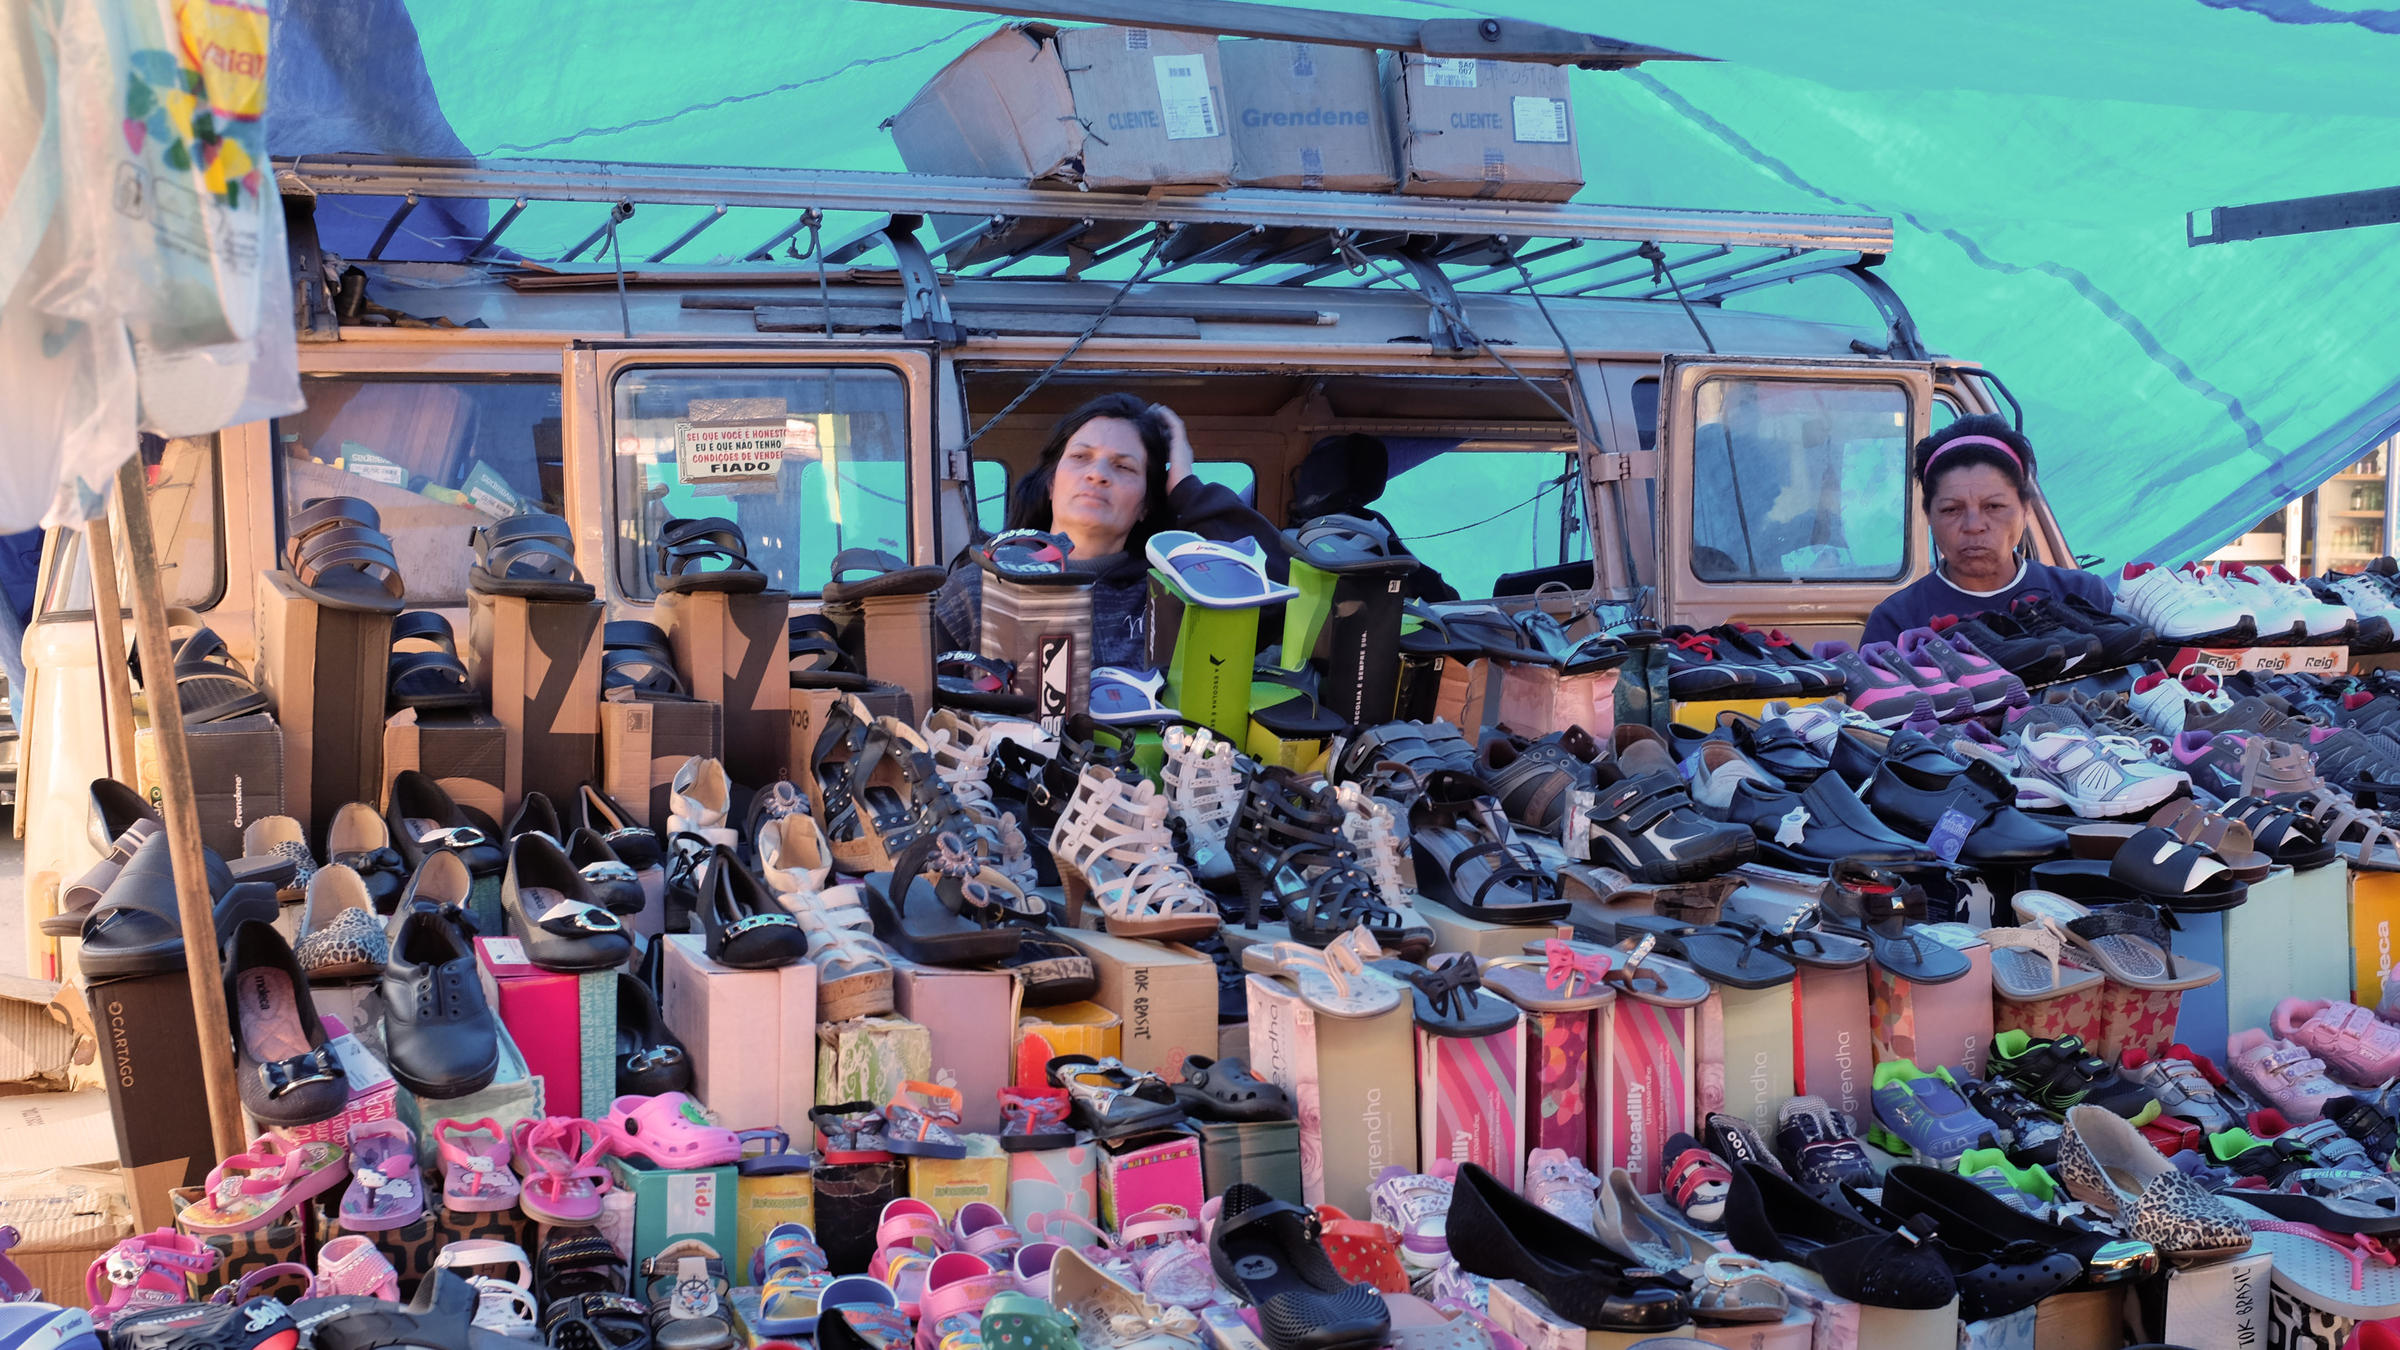 5dc0021d34ef3 A woman waits for customers at a street market where she sells shoes in Sao  Paulo. View Slideshow 1 of 2